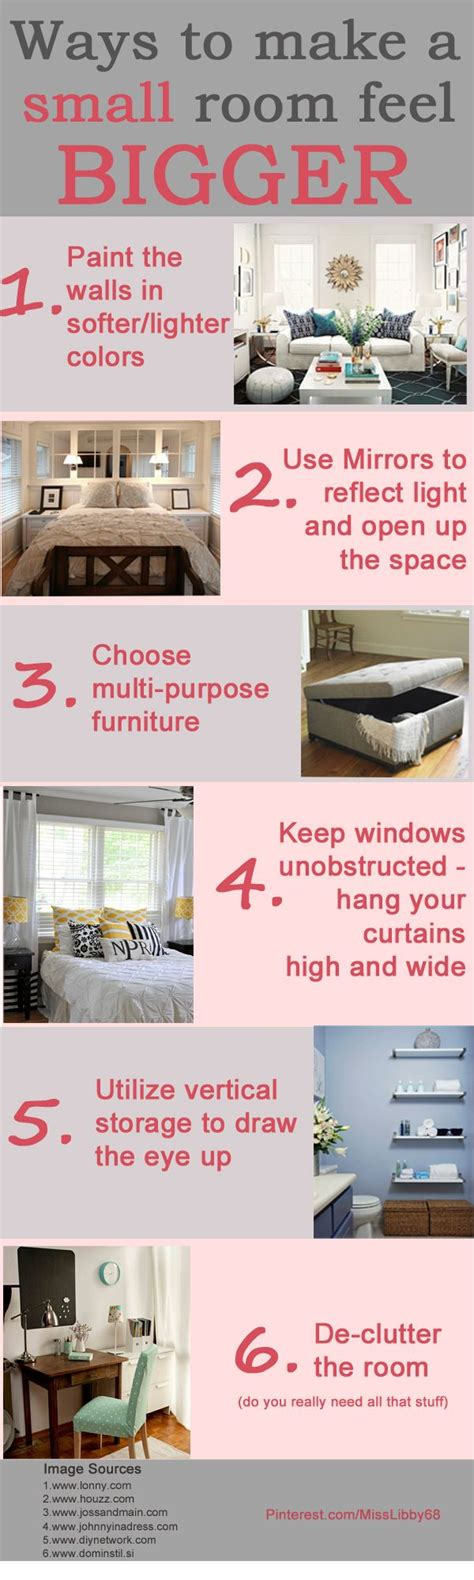 how to place furniture in a bedroom how to place furniture in a small bedroom arrange bedroom image bedroomarrange